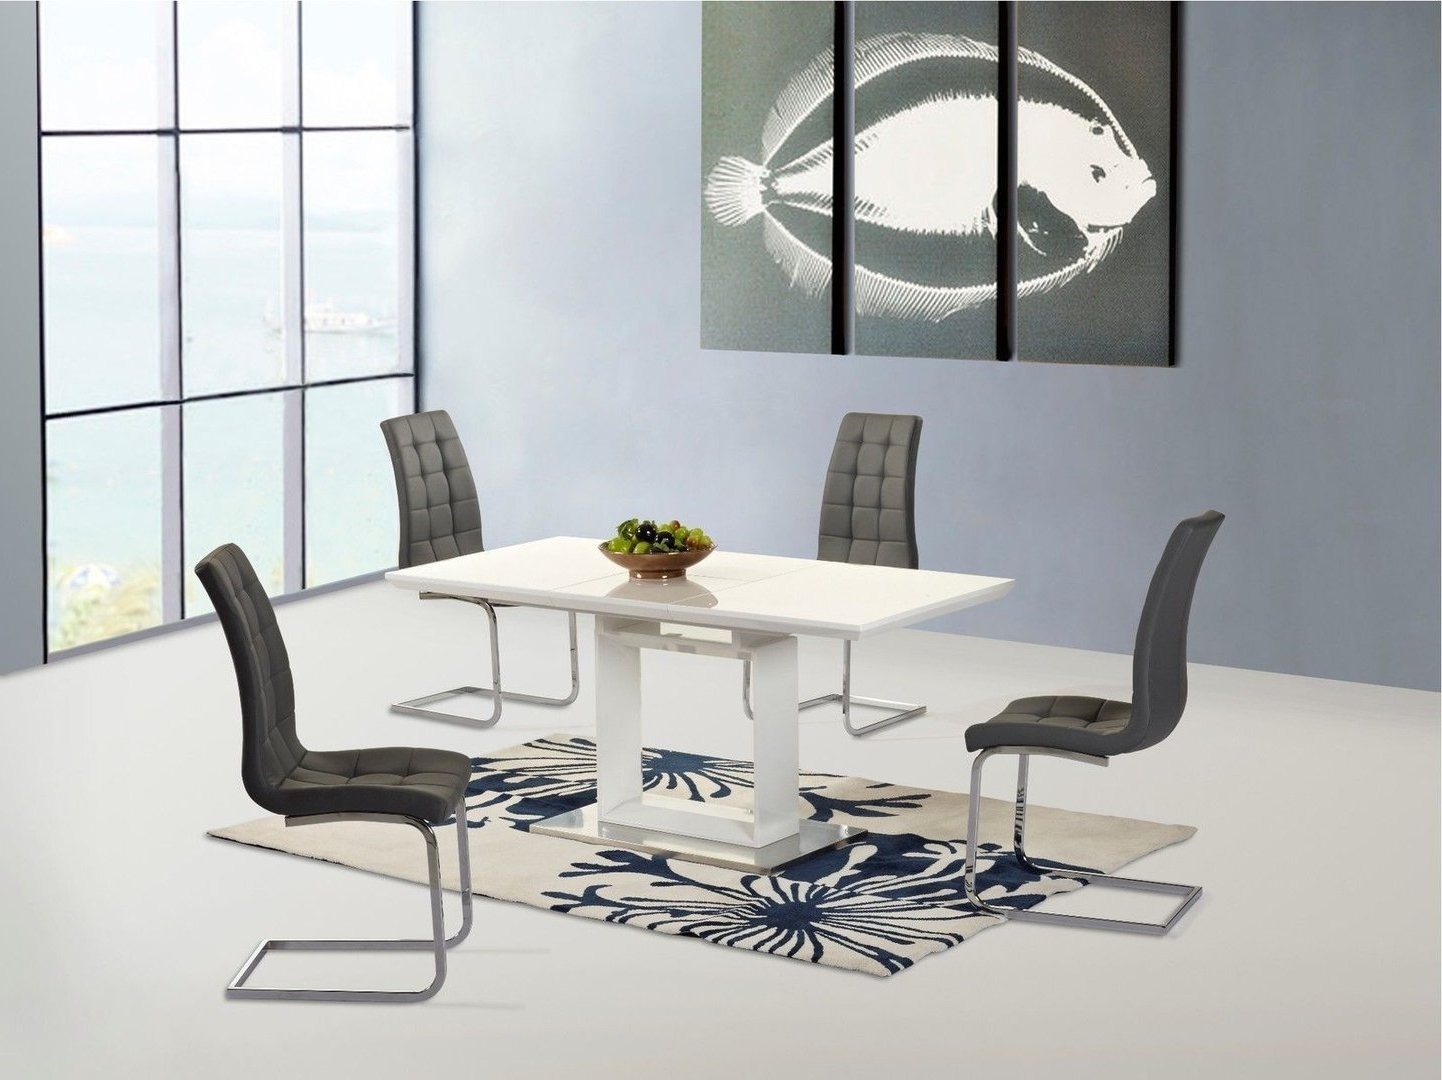 White Gloss Dining Tables 120Cm Pertaining To Latest New White High Gloss Extending Dining Table And 6 Grey Chairs (View 9 of 25)